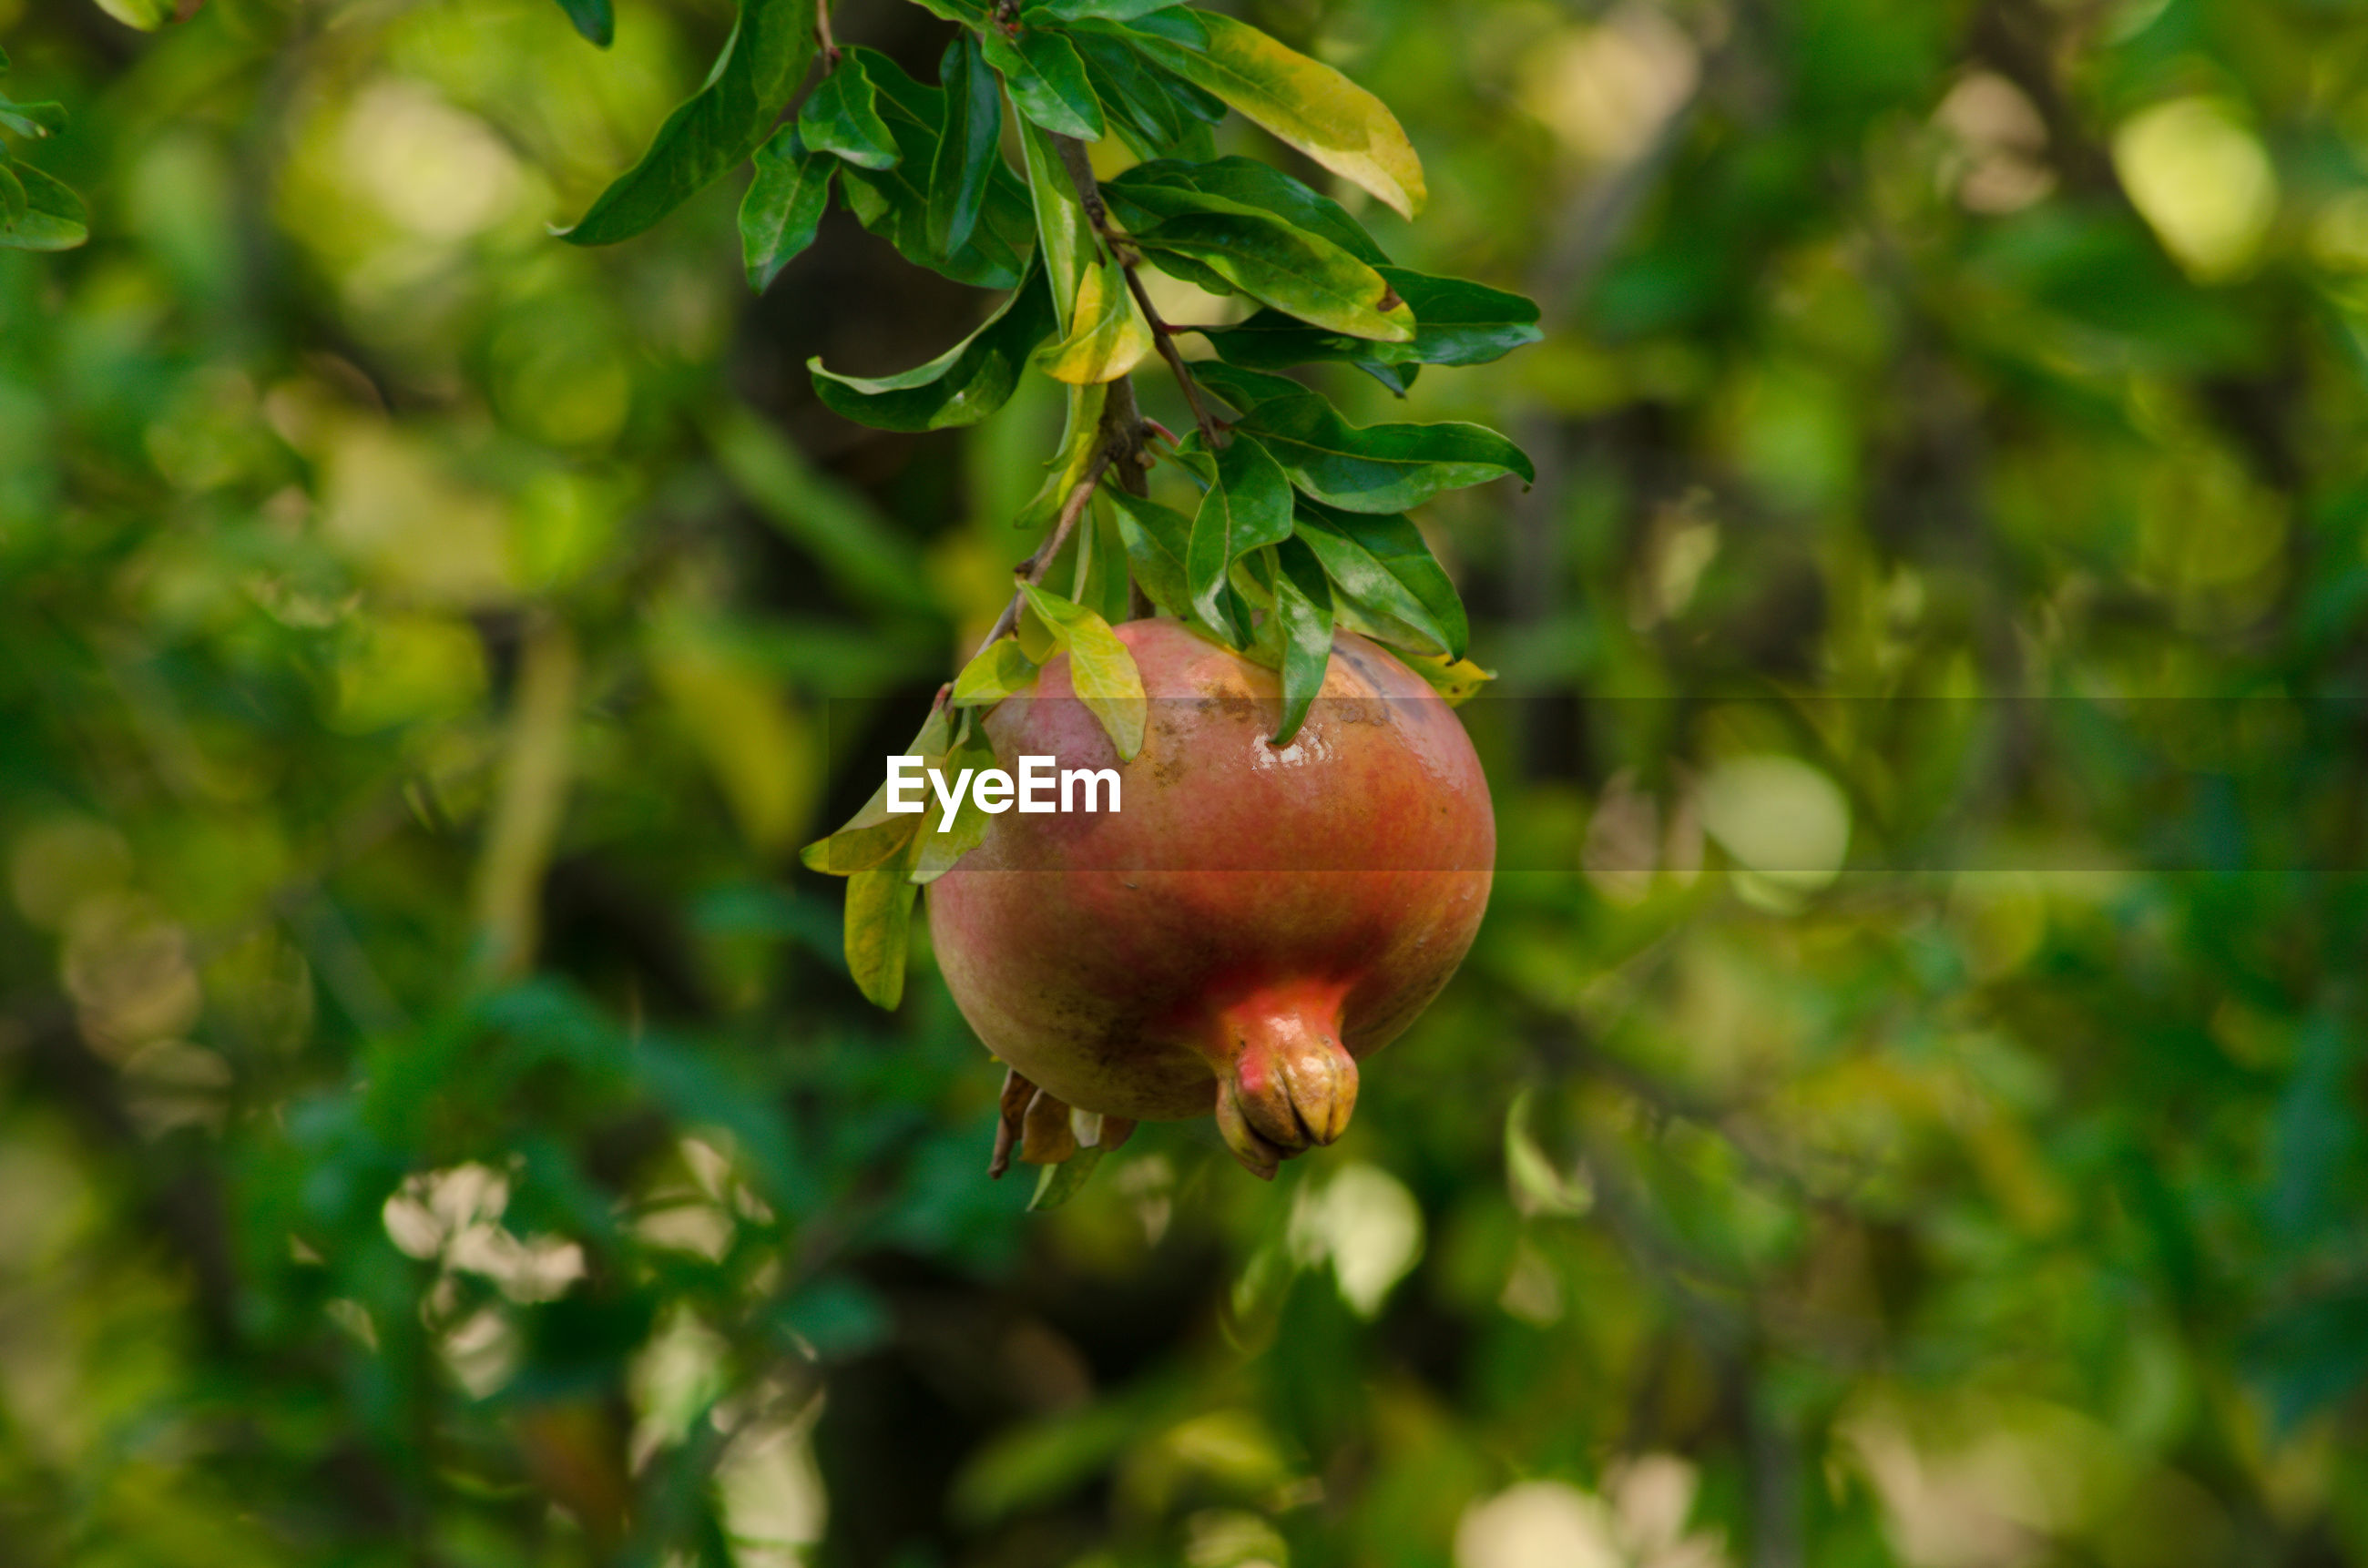 Low angle view of fruit hanging on tree